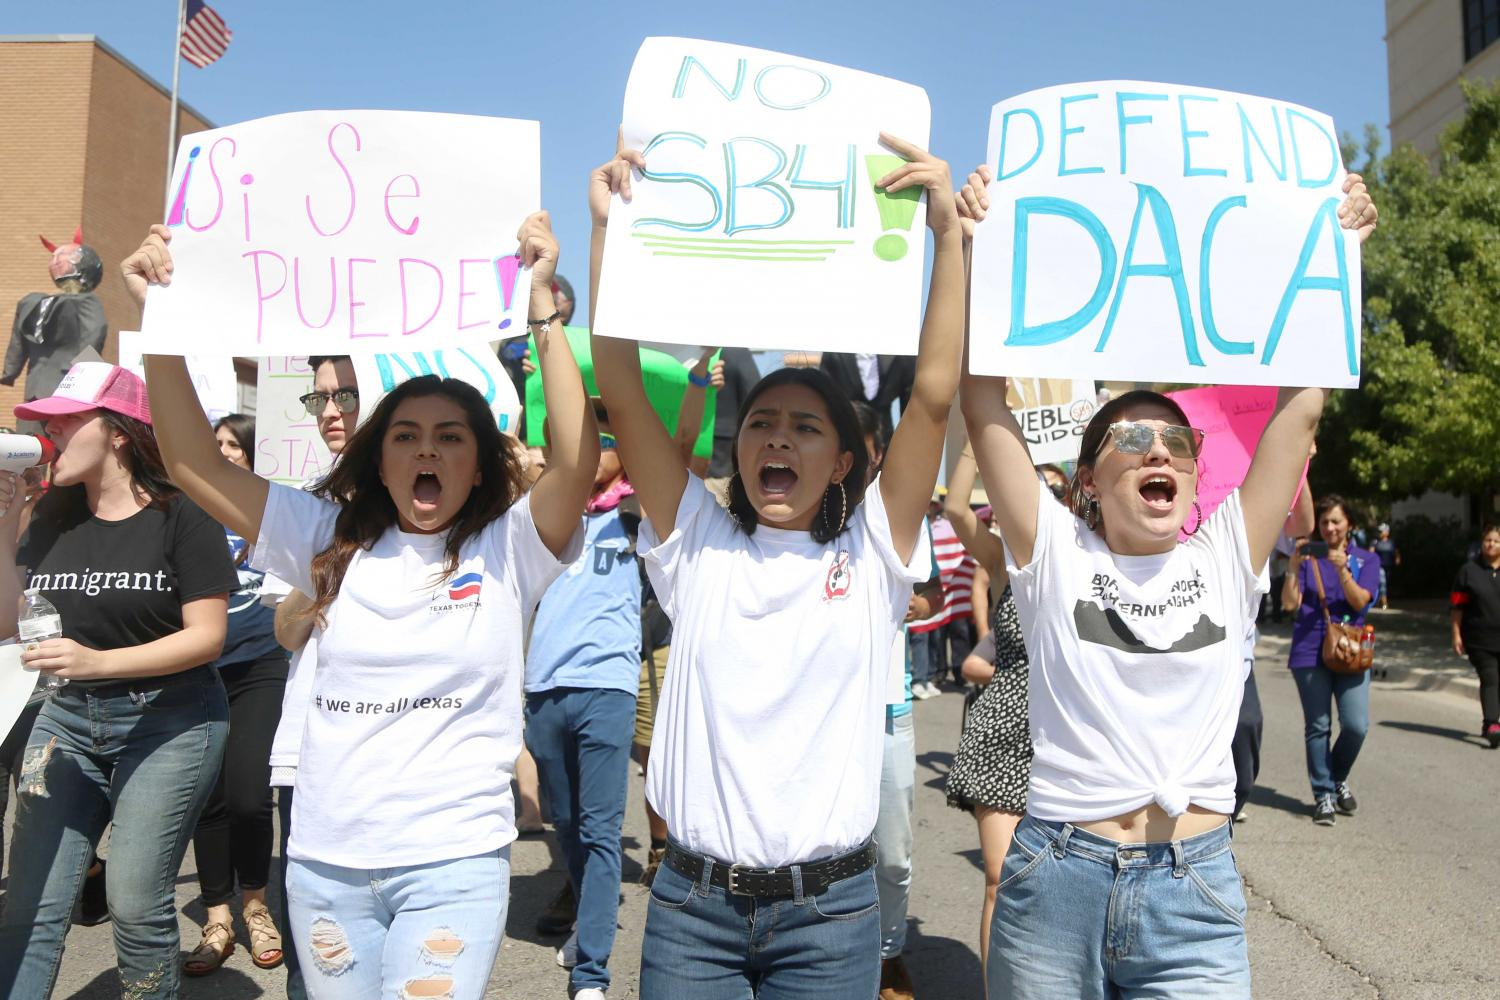 Trump administration announced the end of DACA